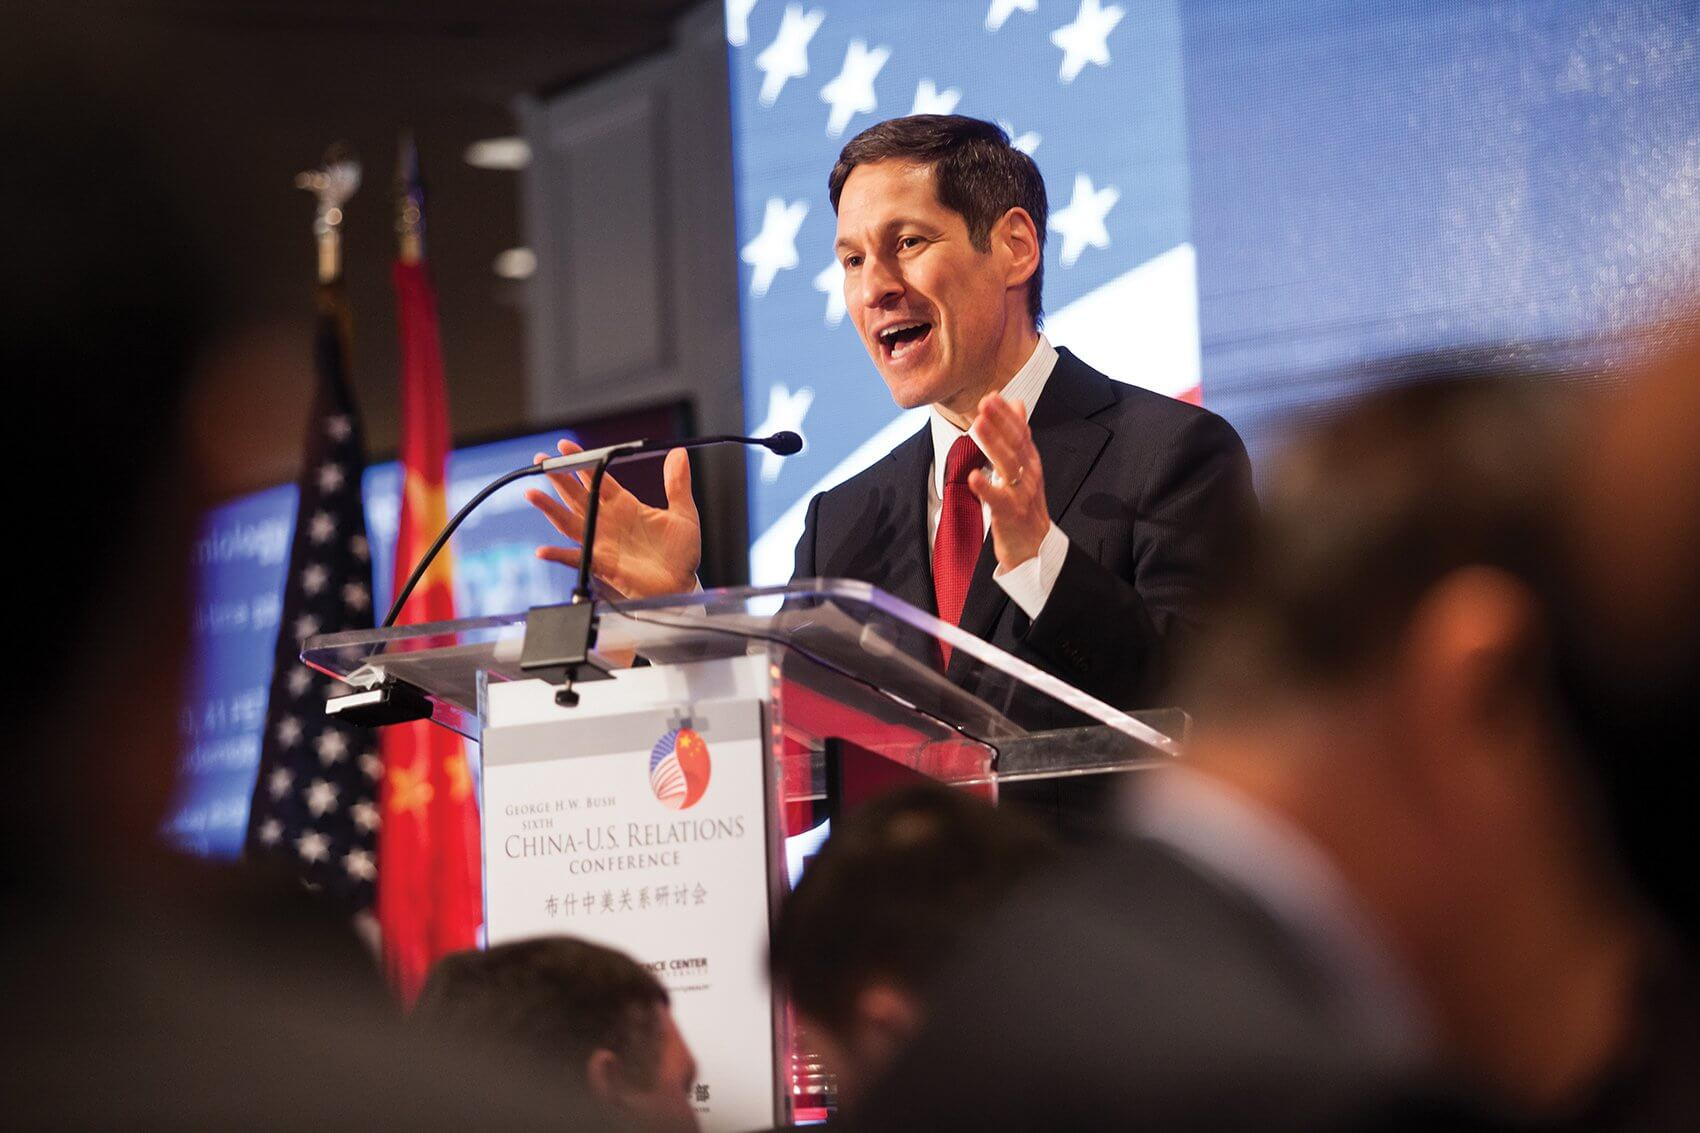 Keynote speaker Thomas Frieden, M.D., director of the U.S. Centers for Disease Control and Prevention.